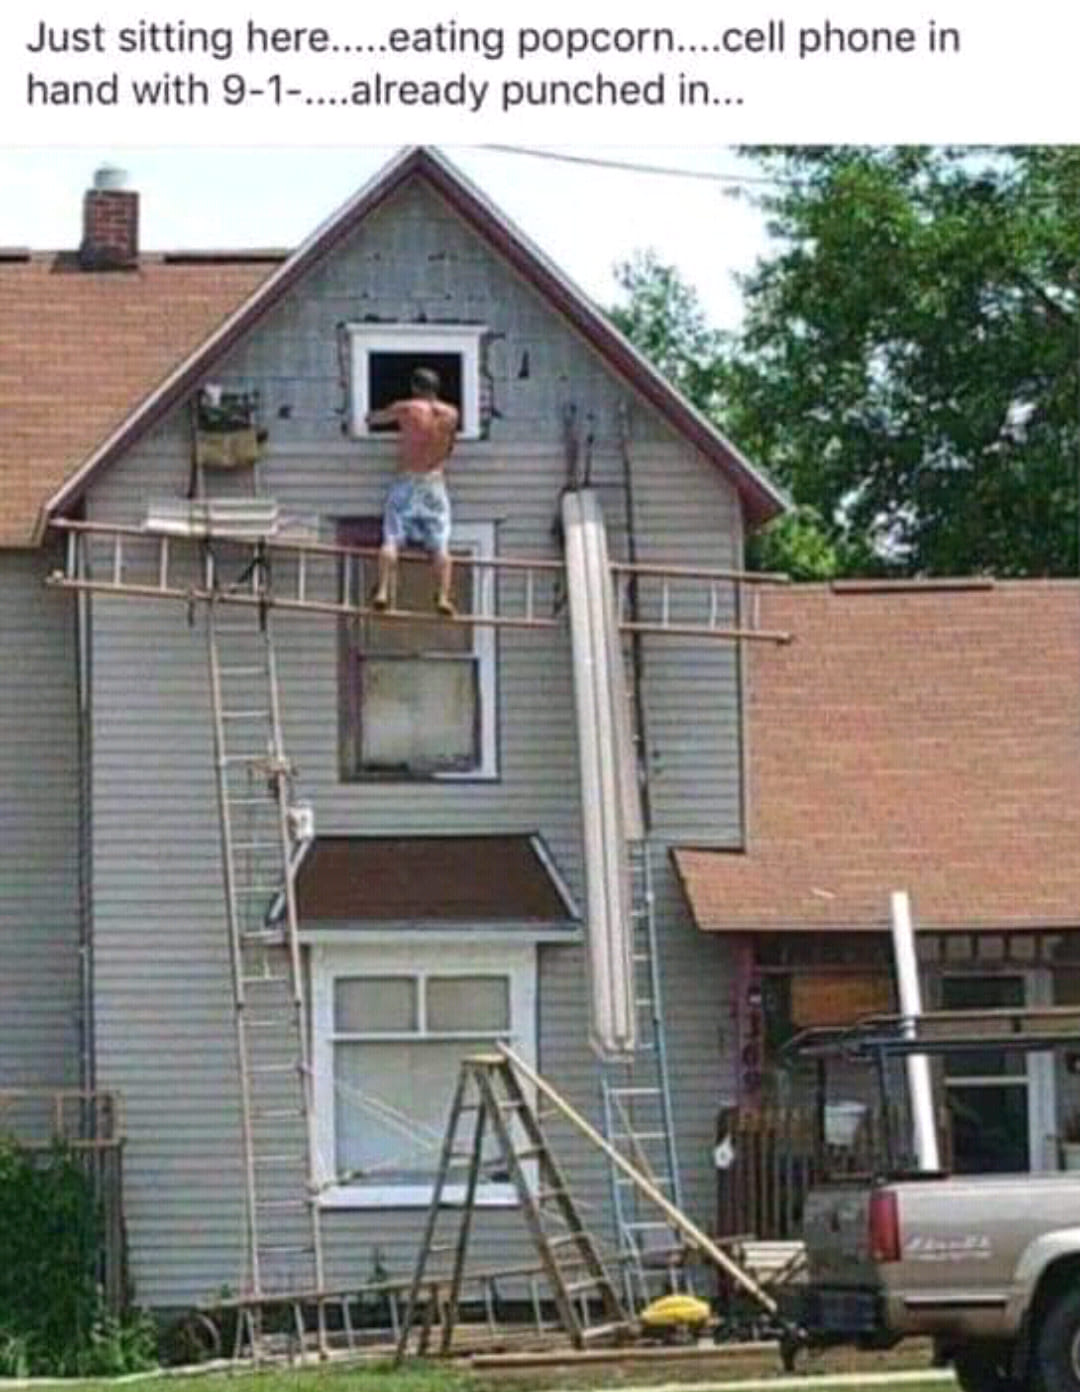 Crazy Guy on Ladders